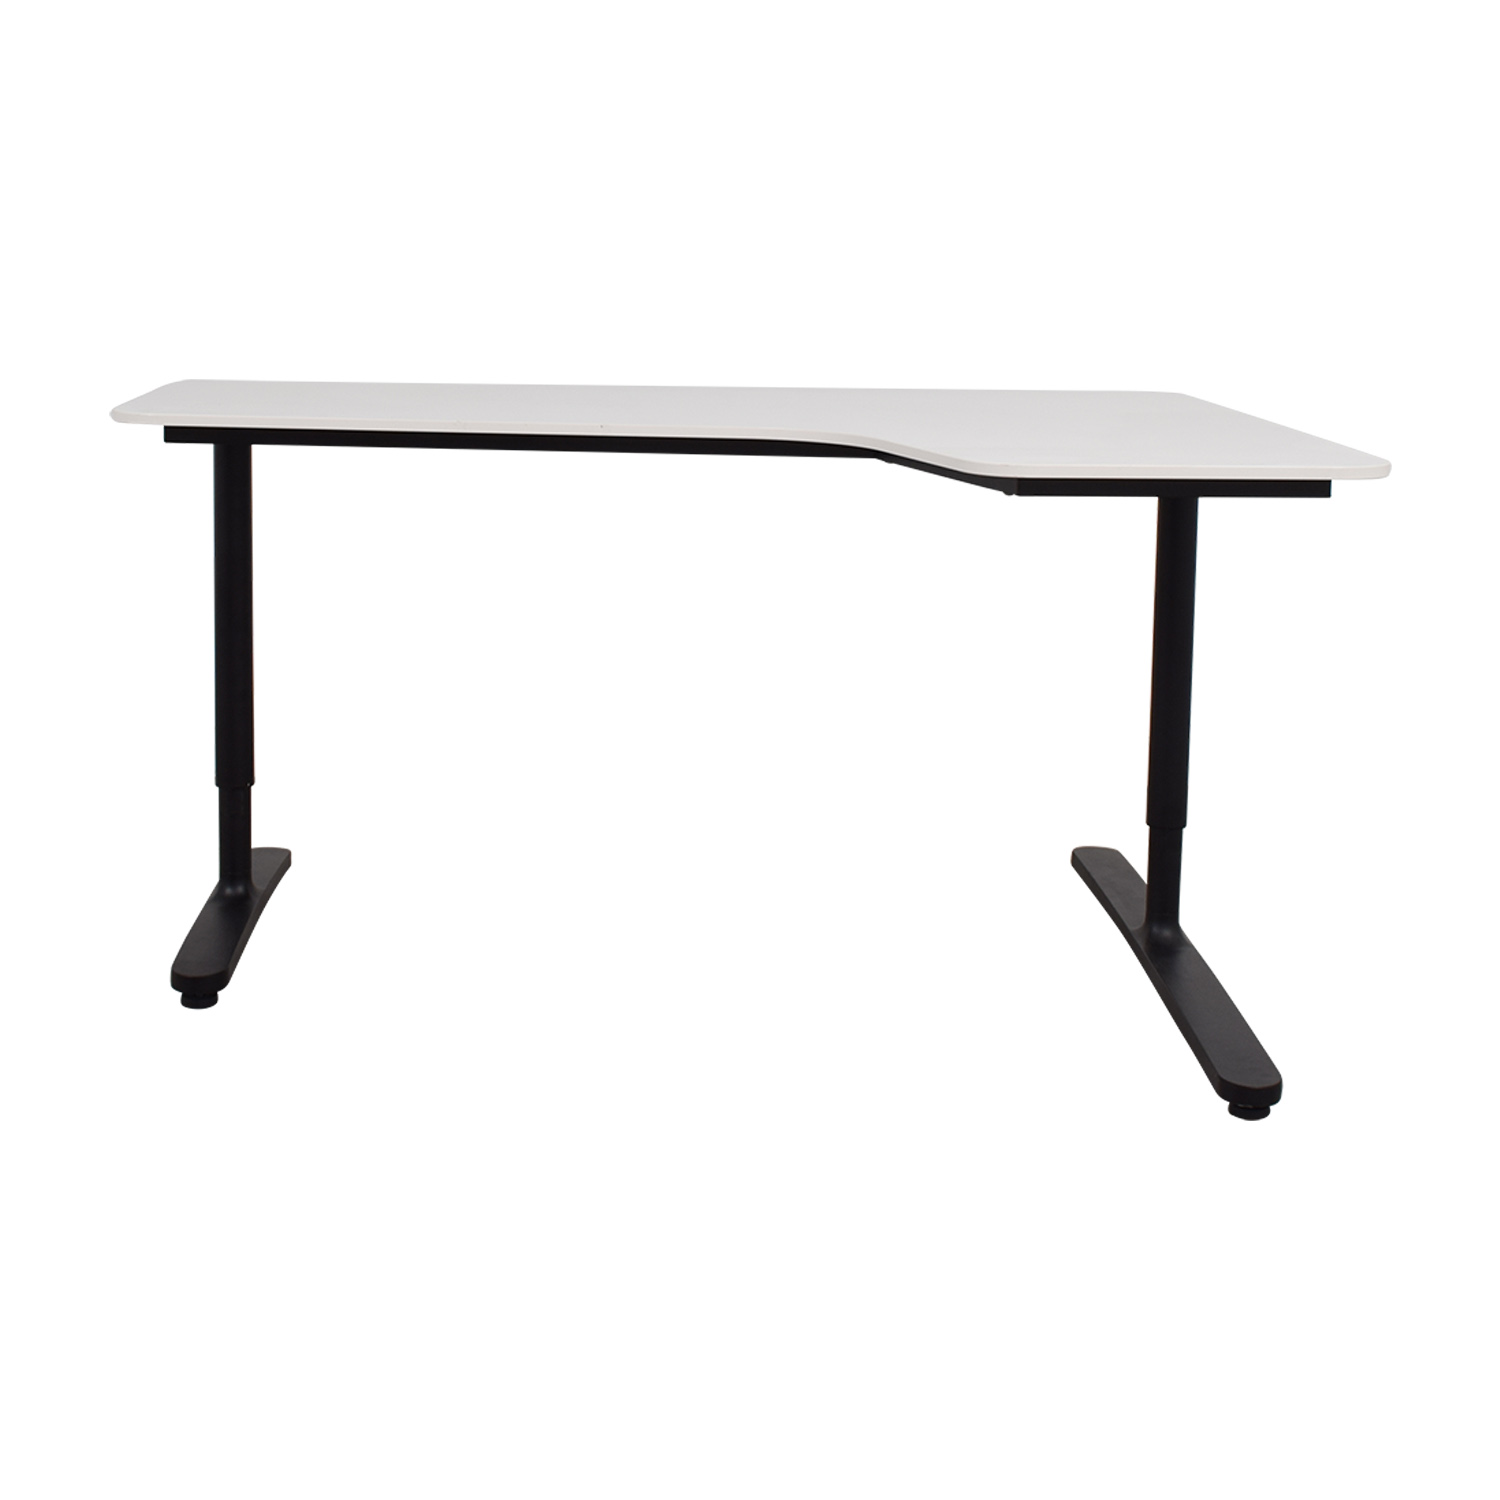 Tables Bekant Corner Ikea 55Off Desk White Right 8nmwO0vN